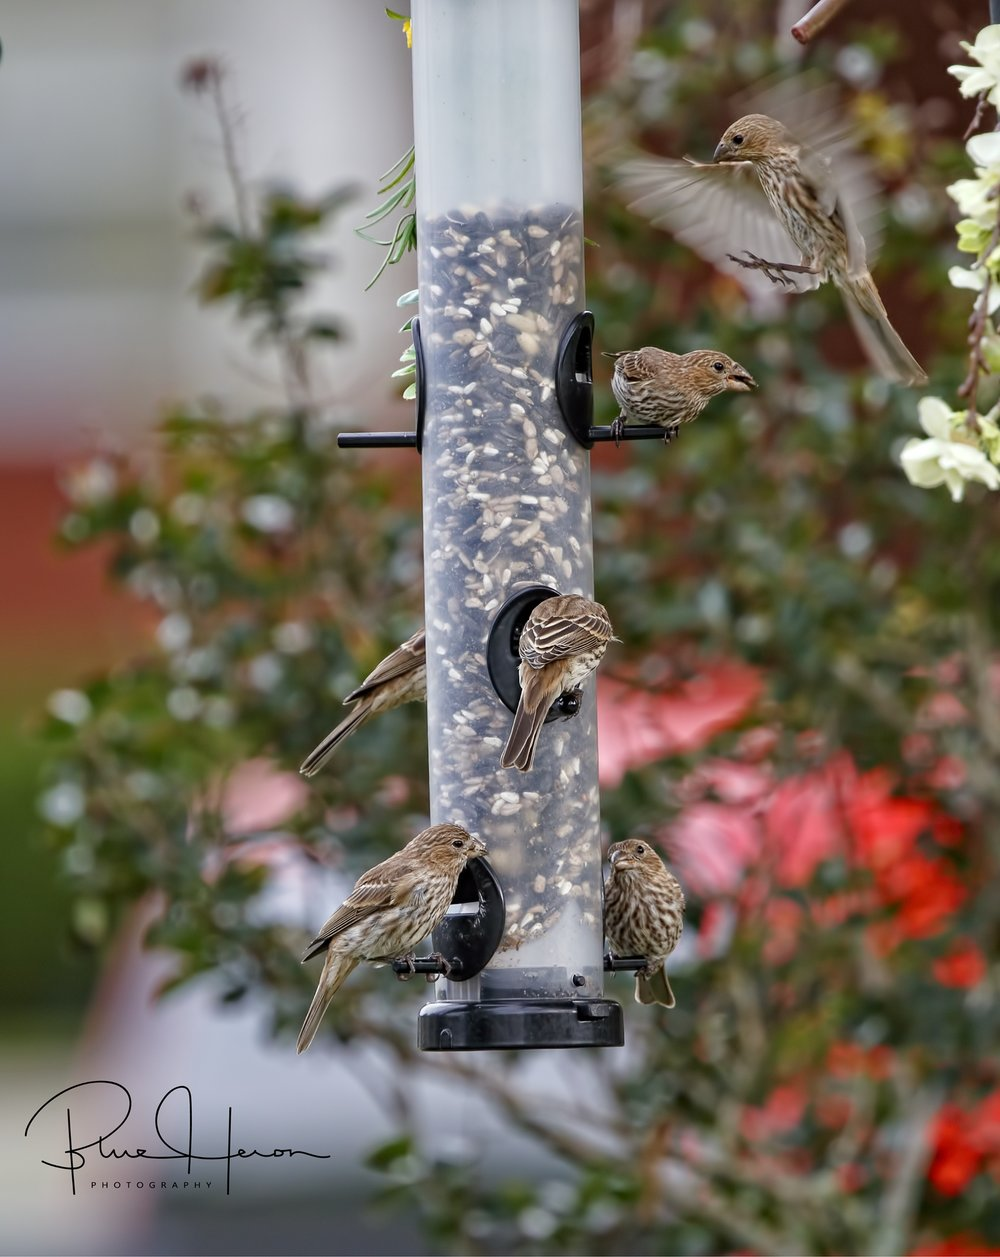 New Bird Feeder is very popular with the House Finches.